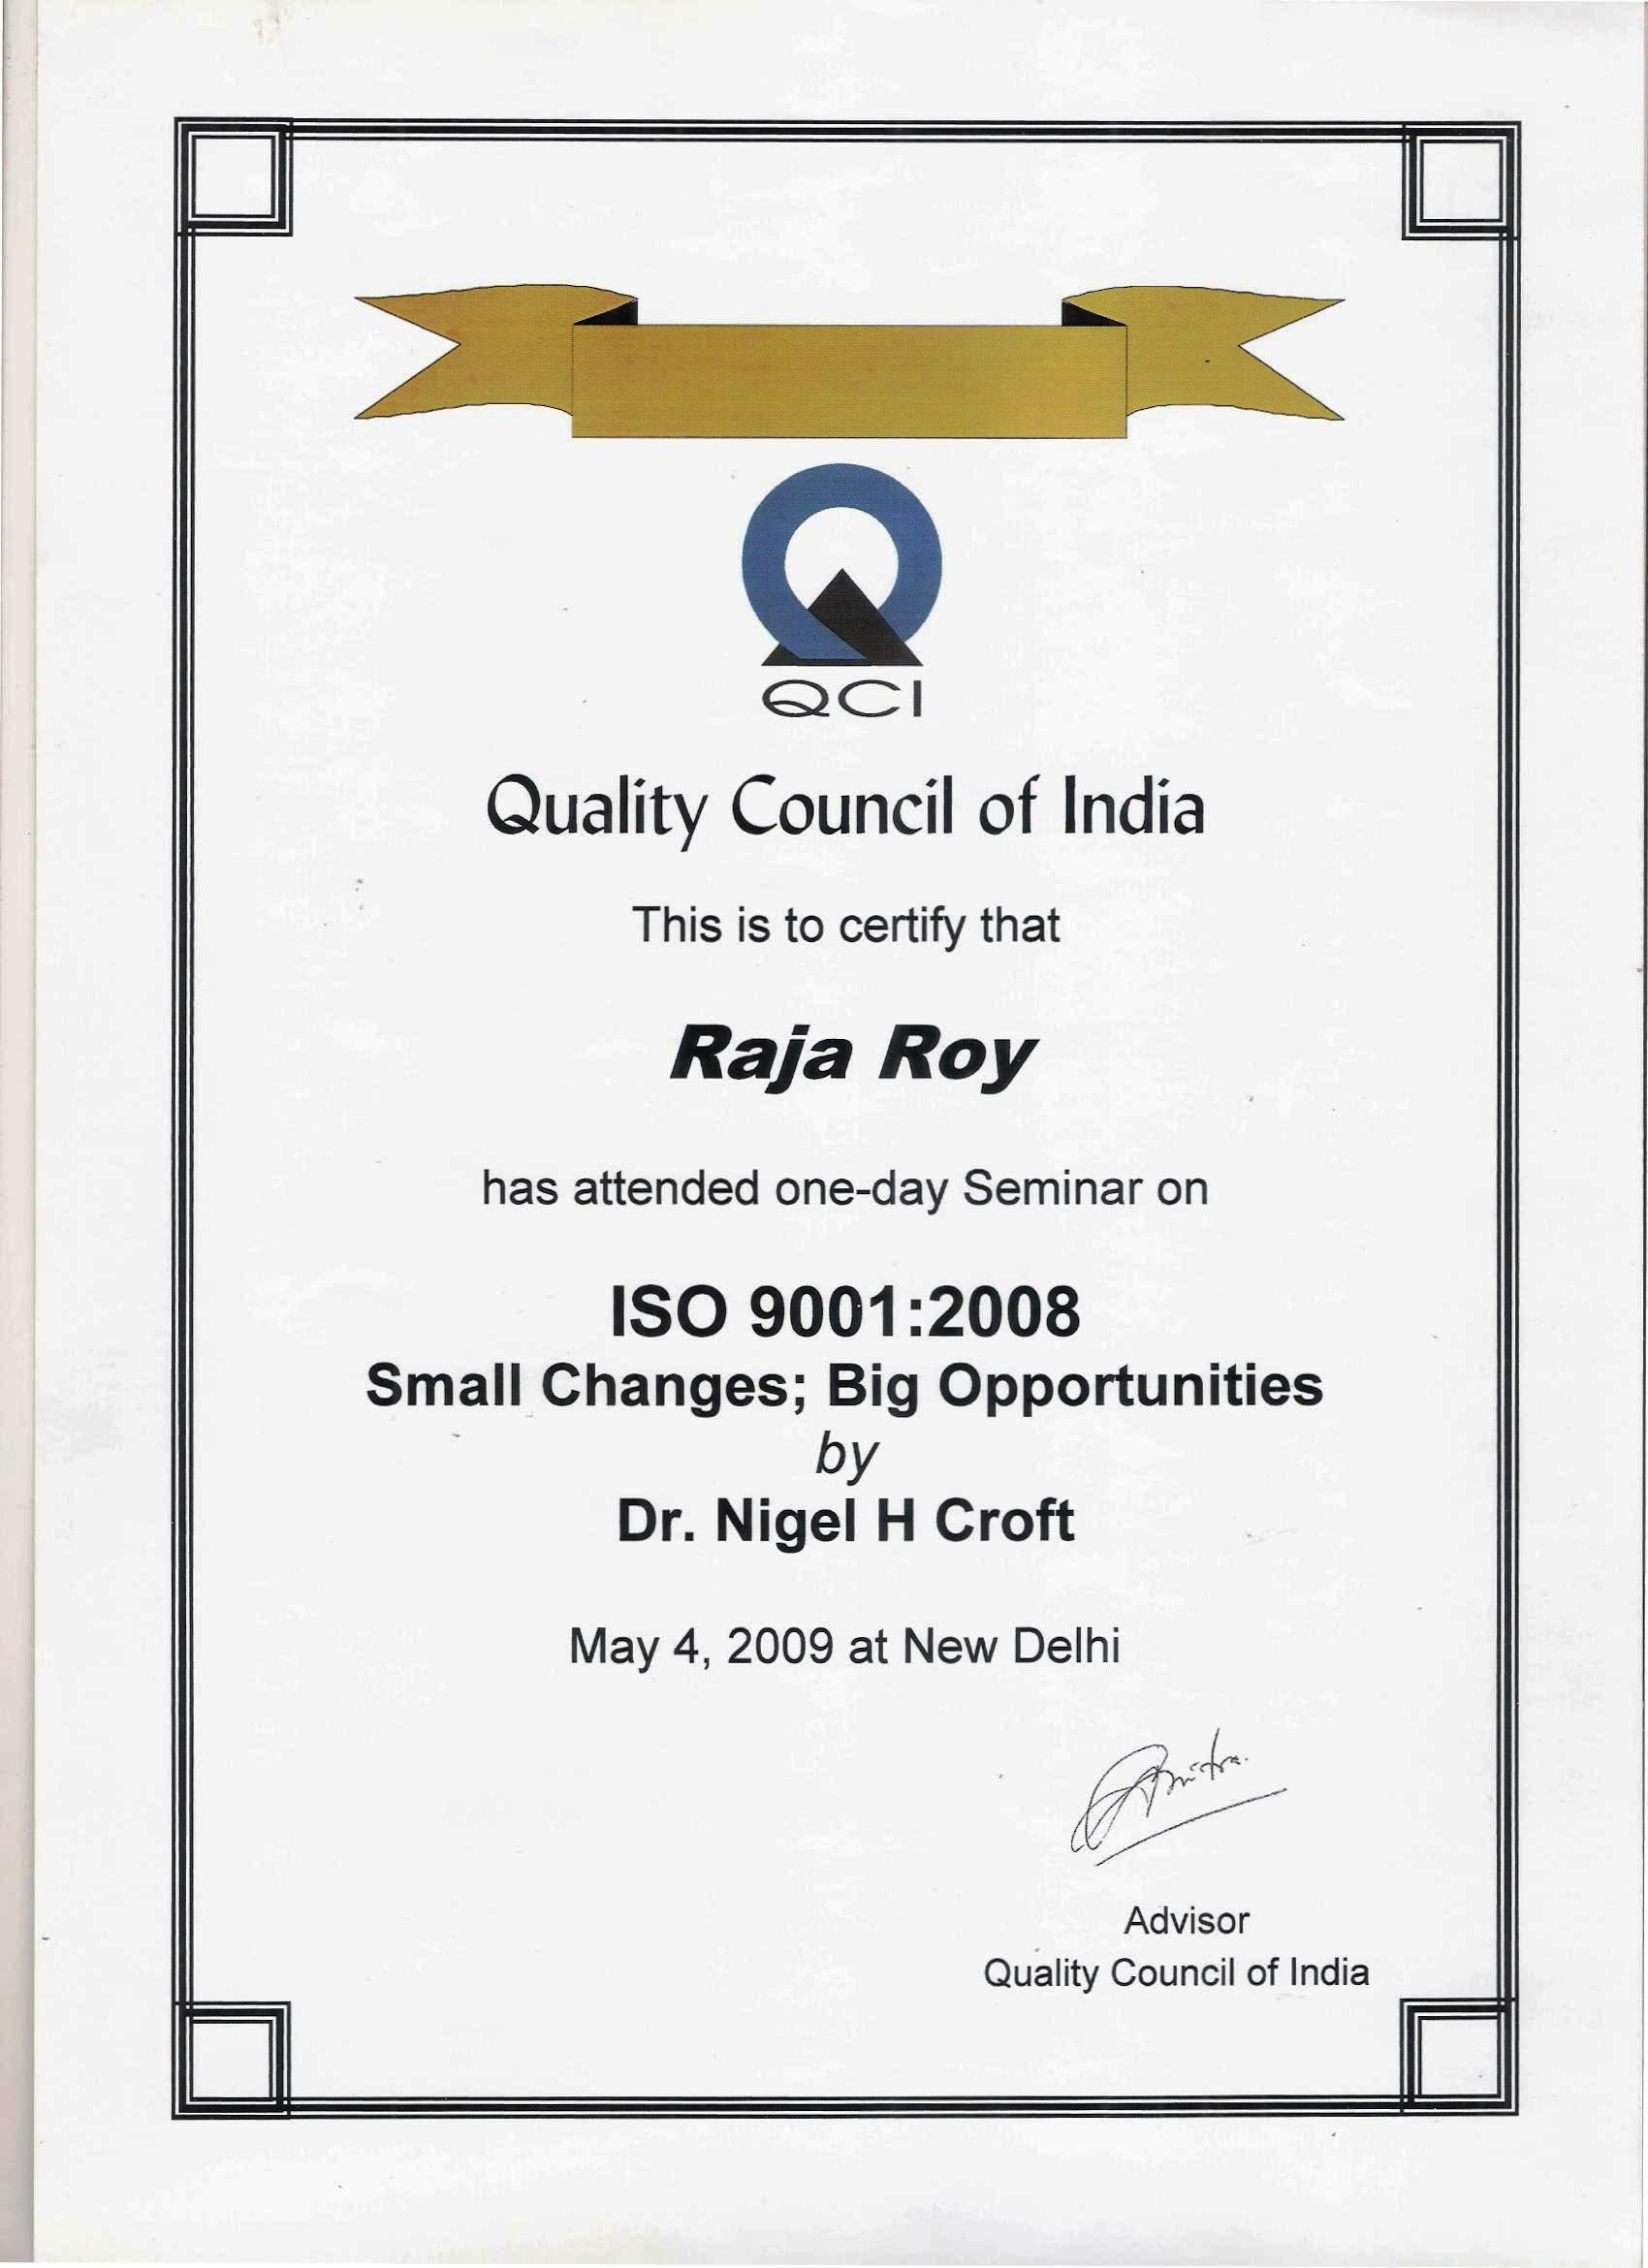 iso 9001 templates free download - iso 9001 work instruction template choice image